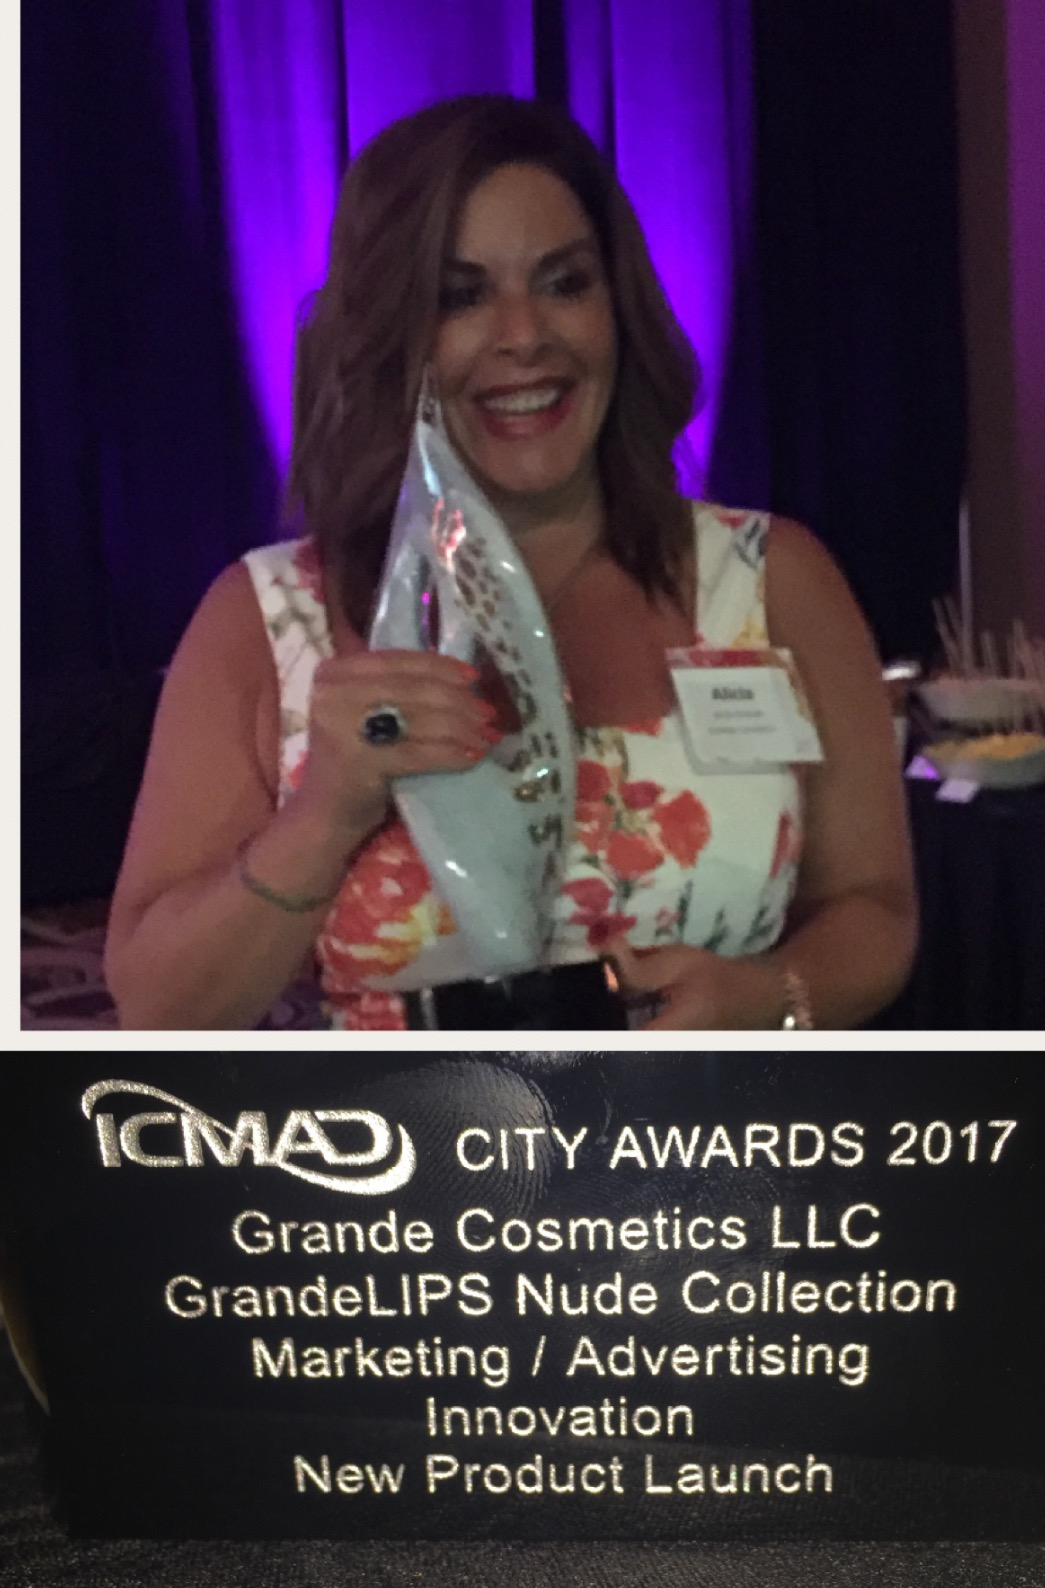 Grande Lips Wins ICMAD City Award for Best New Product